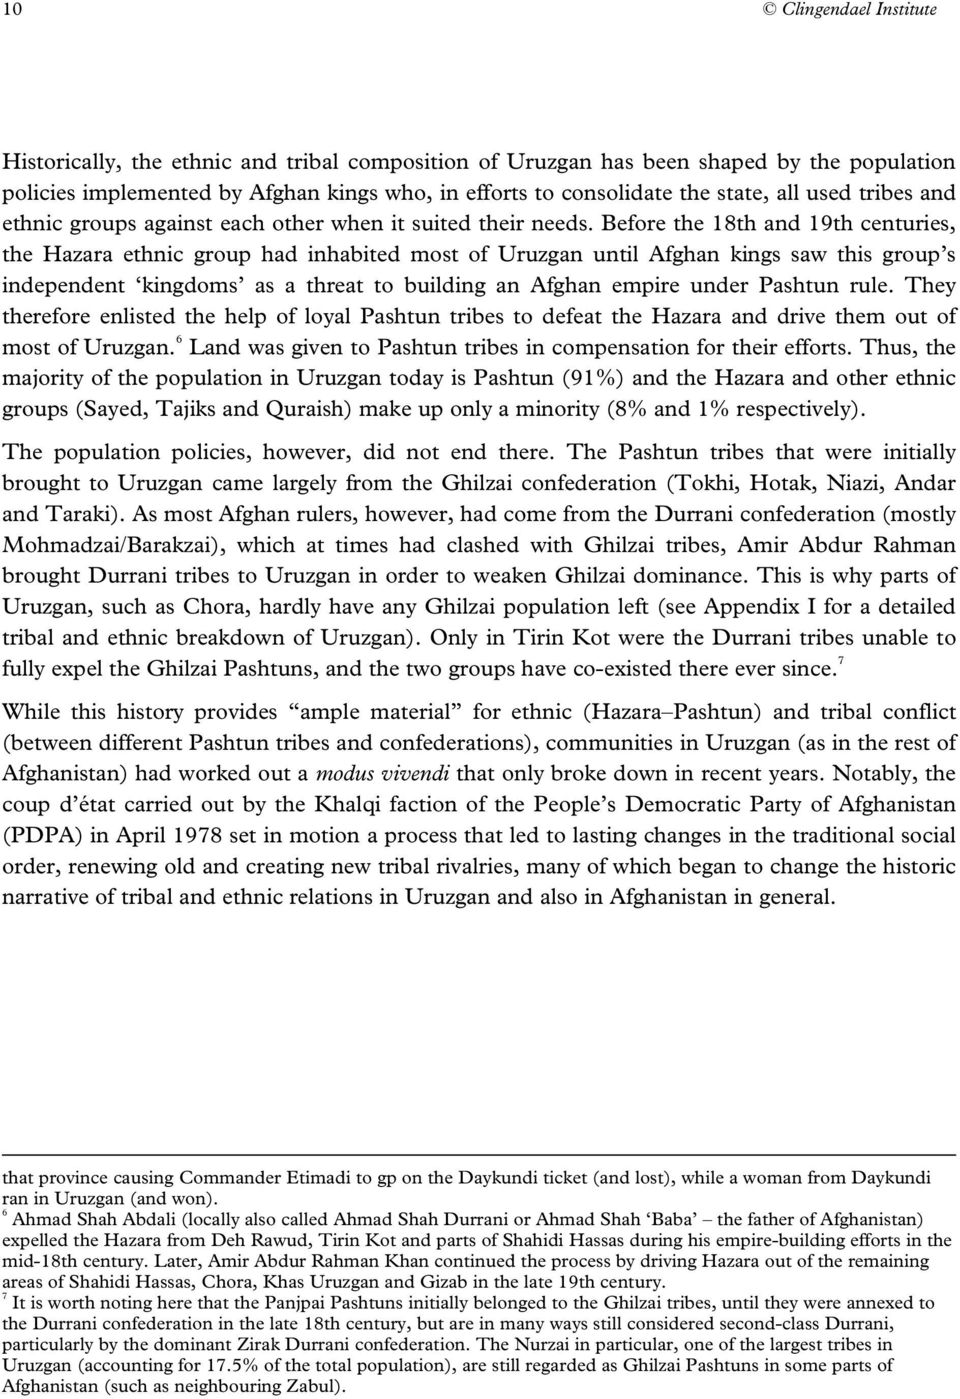 Before the 18th and 19th centuries, the Hazara ethnic group had inhabited most of Uruzgan until Afghan kings saw this group s independent kingdoms as a threat to building an Afghan empire under